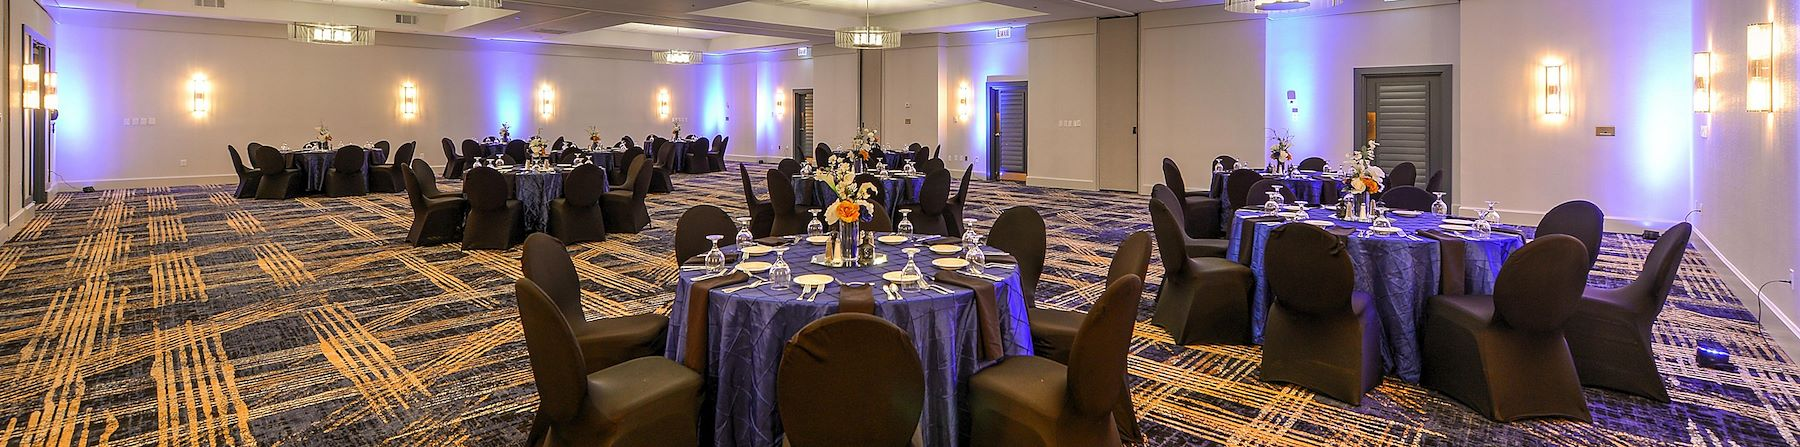 Meeting Services of Crowne Plaza Jacksonville Airport Hotel, Florida